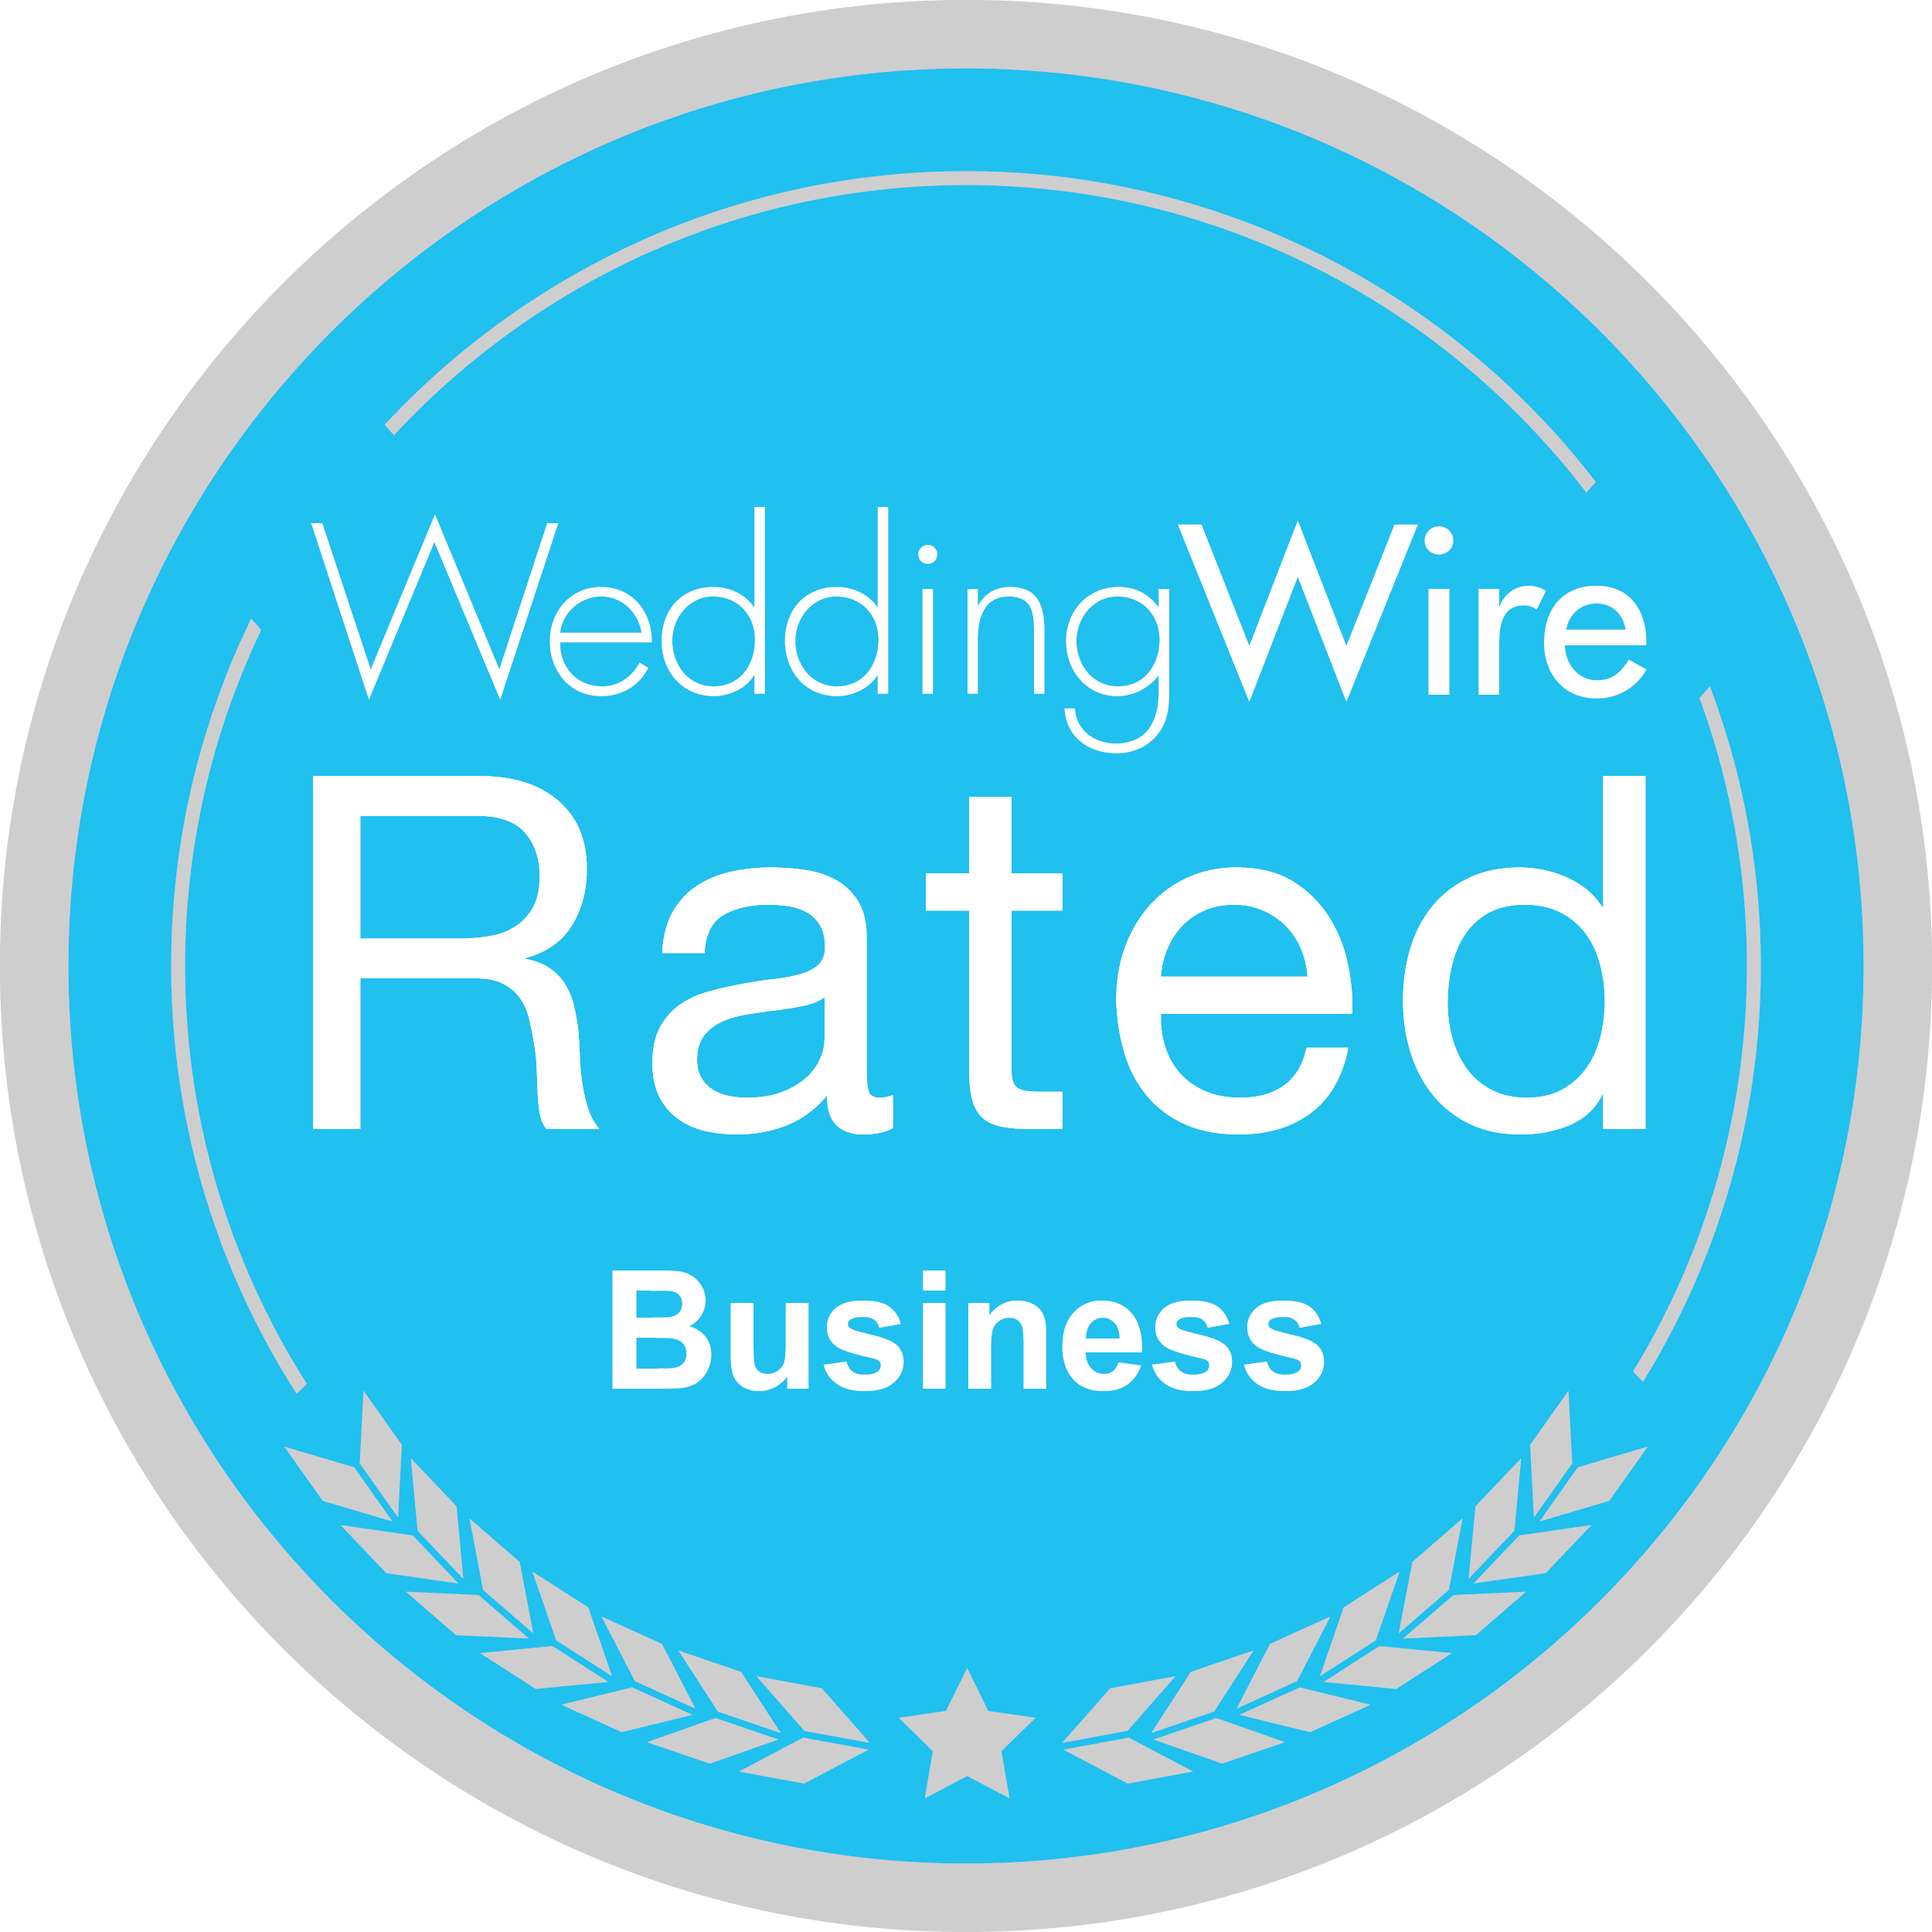 rated business Award